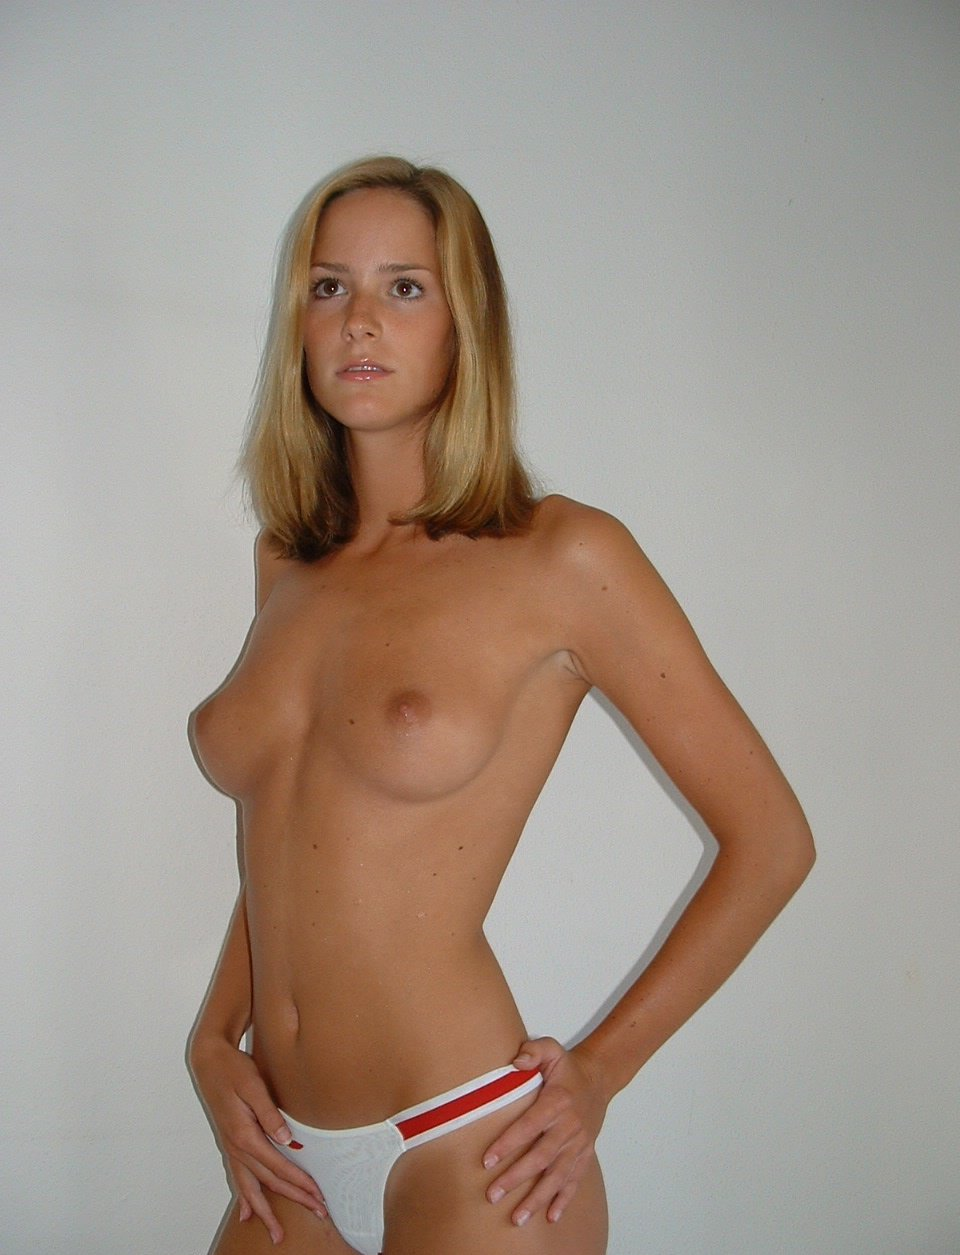 Are not top amatuer nude photos reply))) Thanks